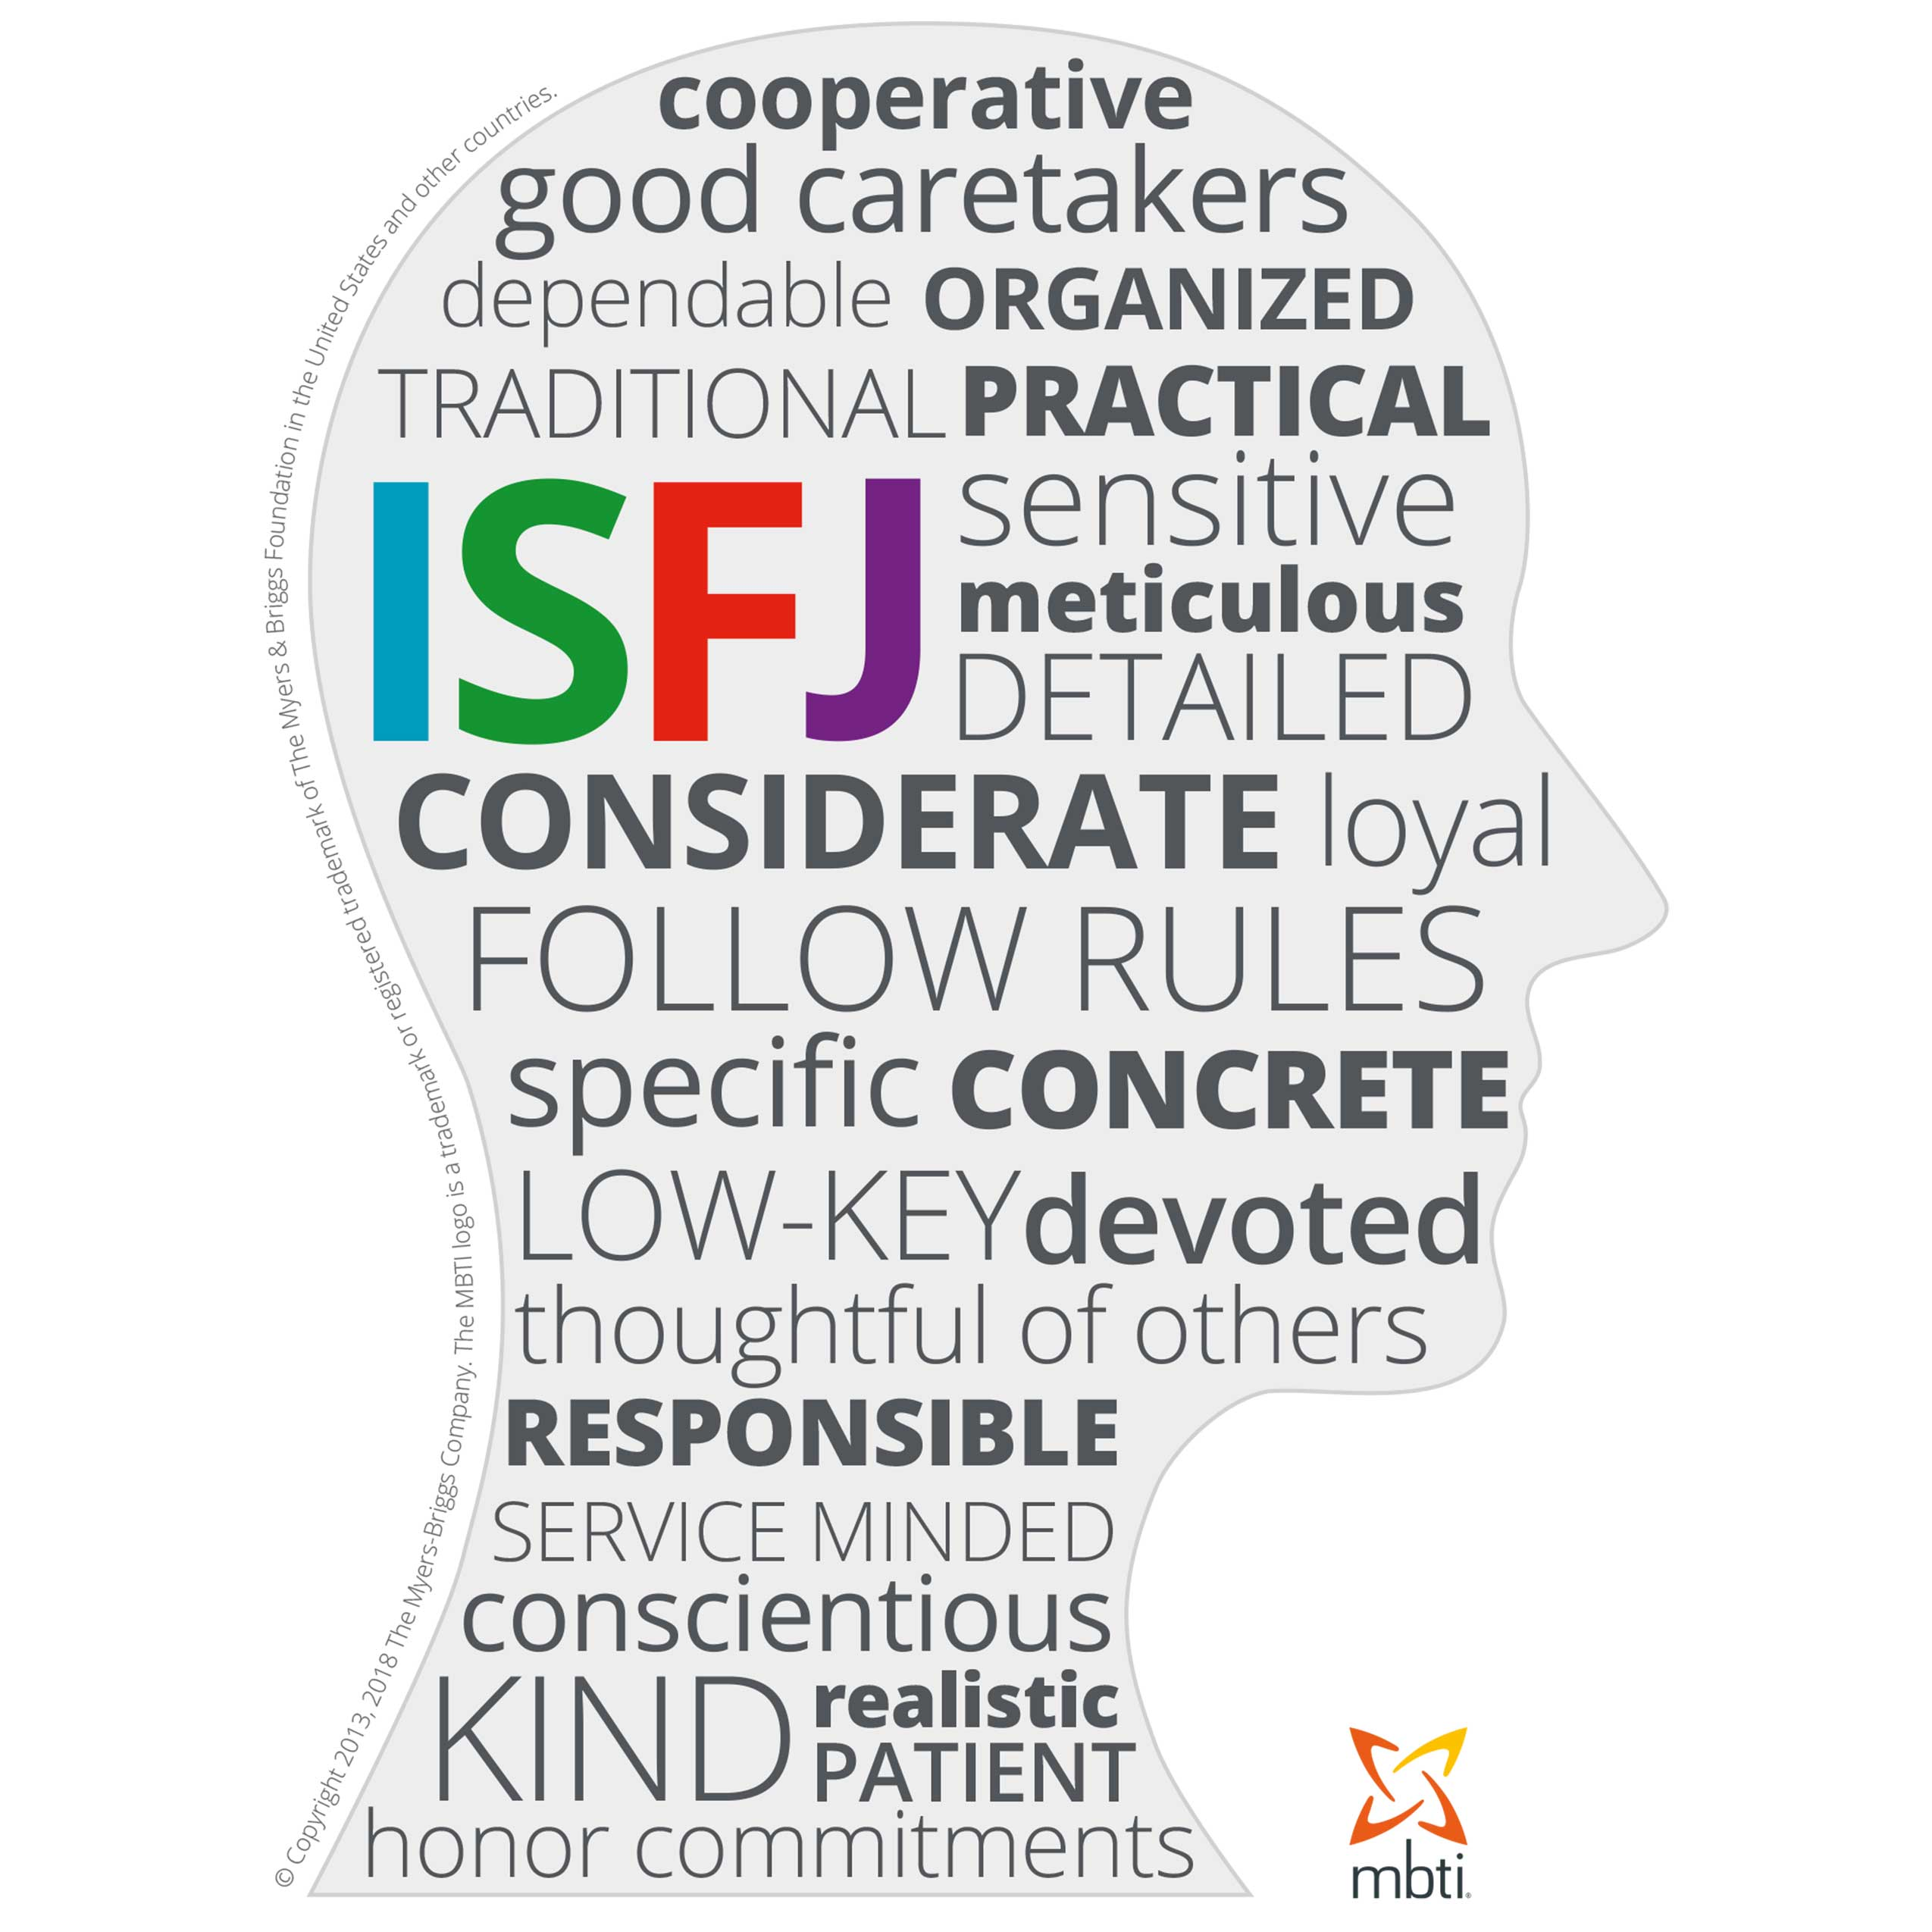 Typical characteristics of an ISFJ